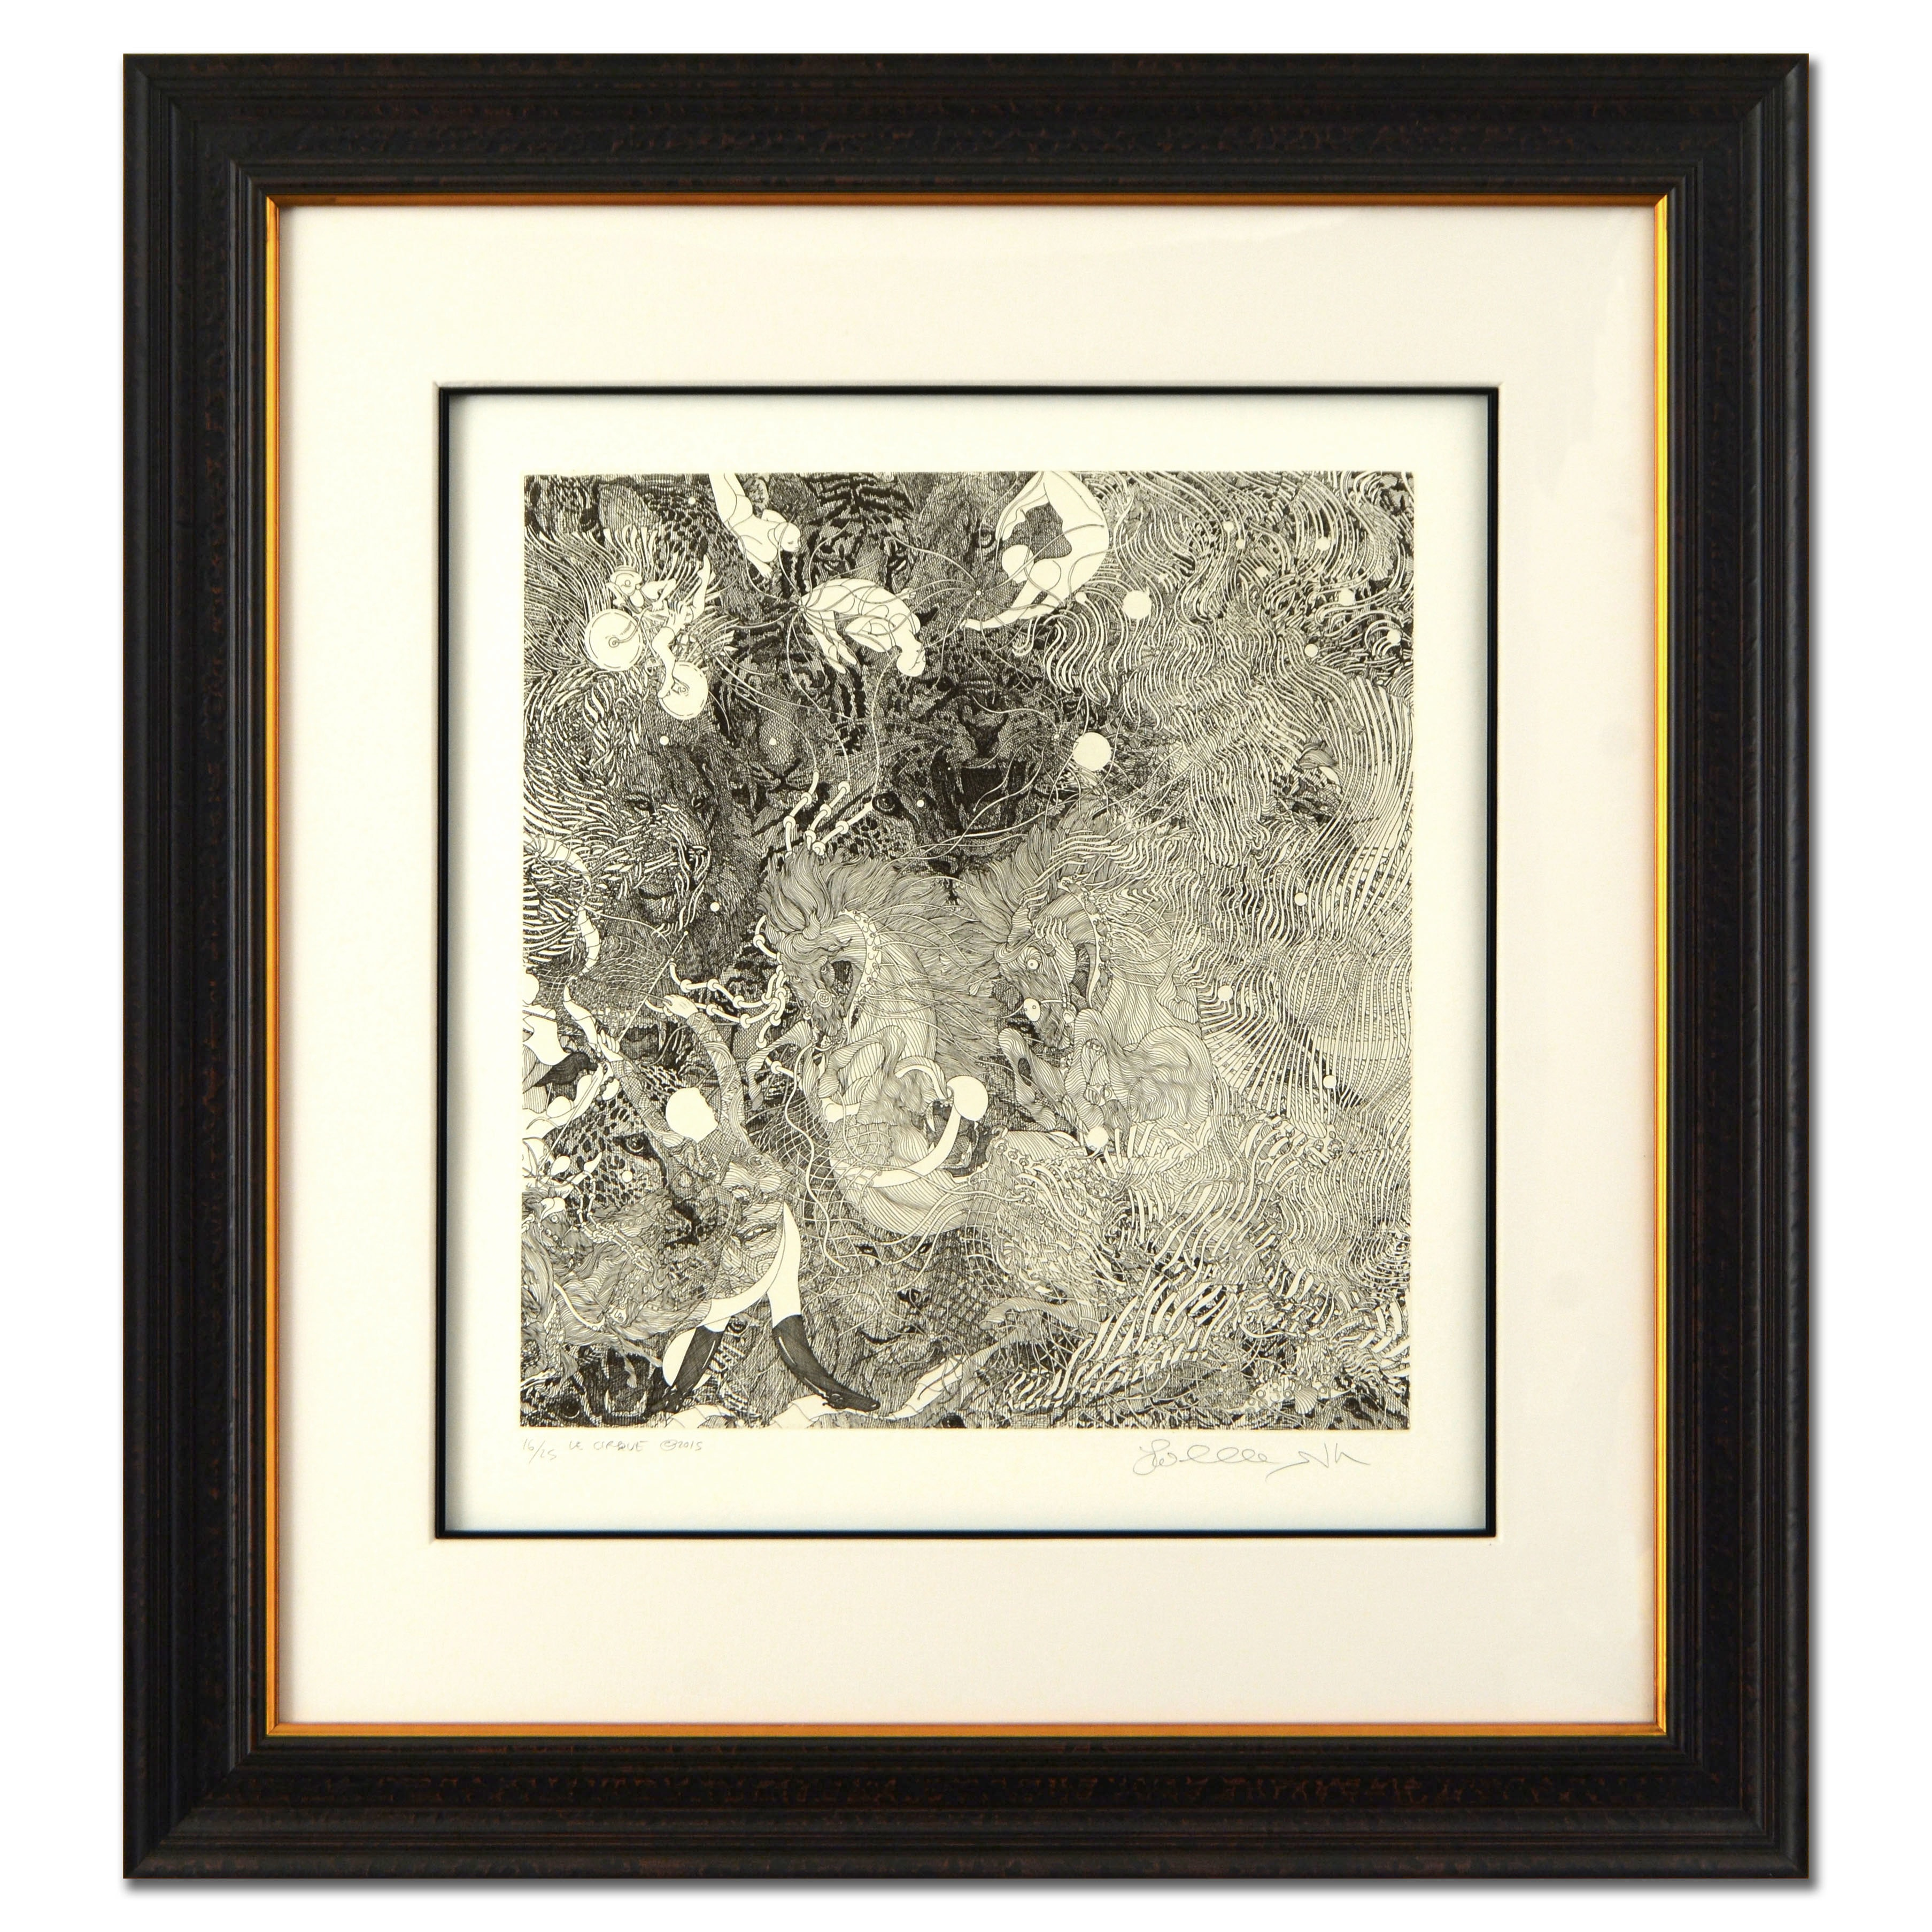 """Le Cirque"" Framed Limited Edition Etching by Guillaume Azoulay"